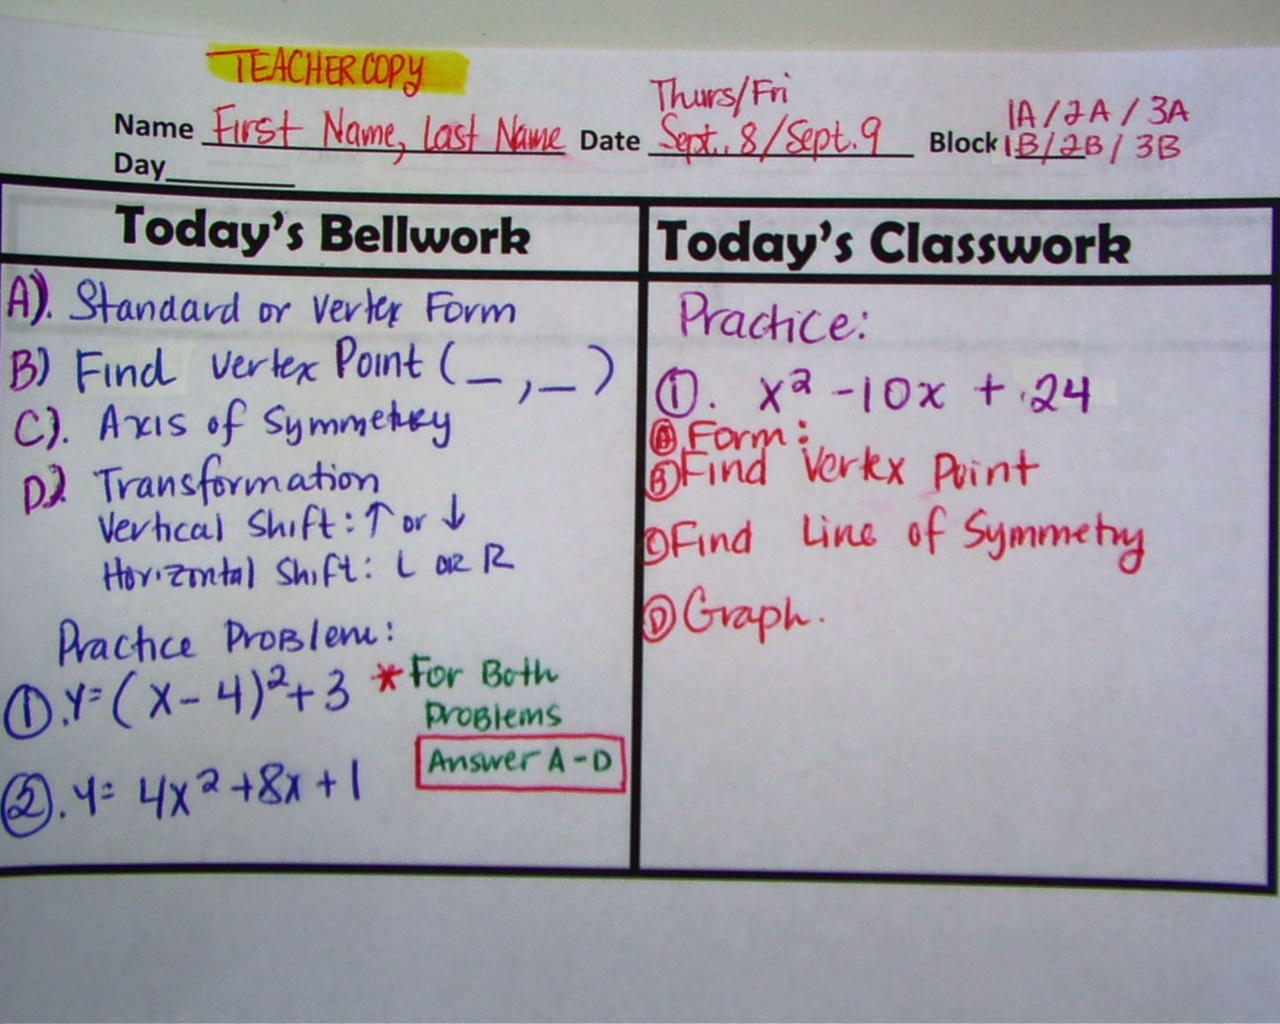 bellwork questions This bellwork for week 7-rocks worksheet is suitable for 7th - 9th grade in this rock worksheet, students answer seven questions about the rock cycle, types of rocks, and the formation of specific rocks they also answer questions about experimental design.